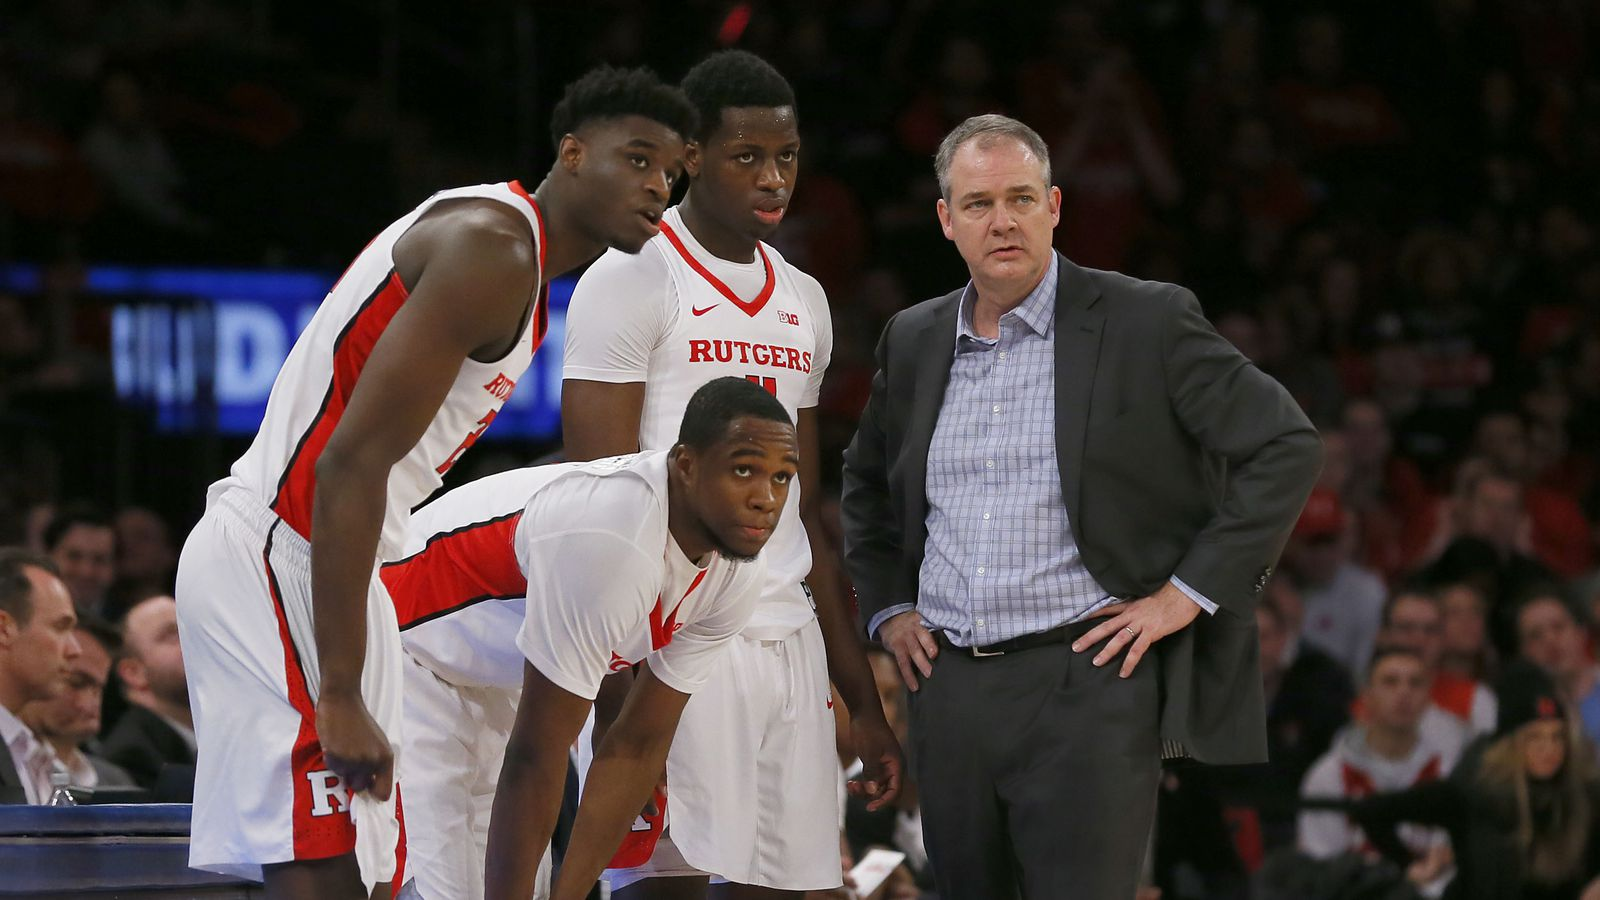 Rutgers Men's Basketball: Review Of Current Roster - On ...